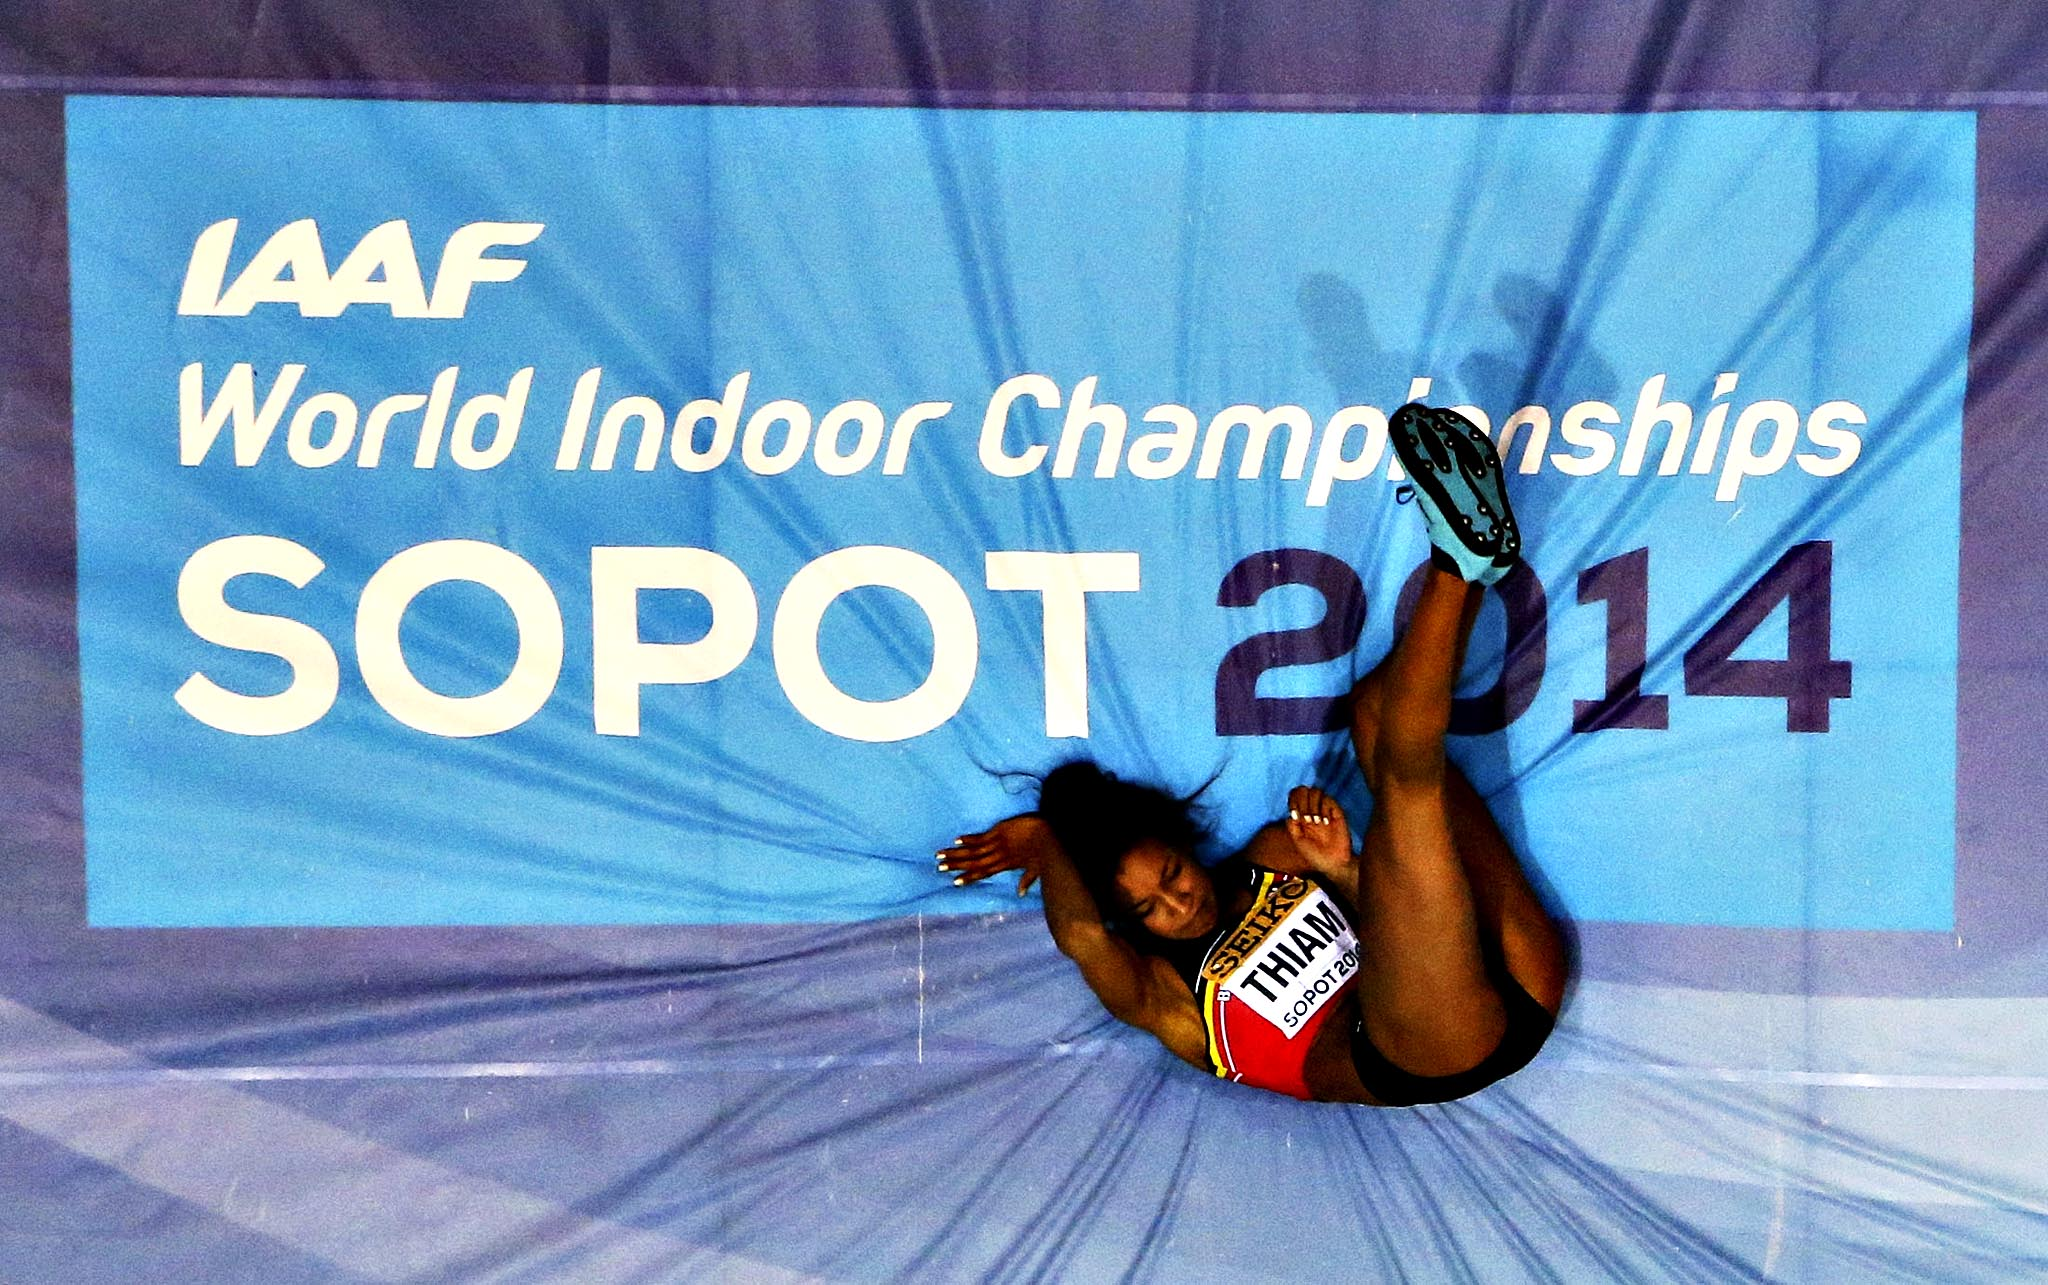 Belgium's Nafissatou Thiam competes in the women's high jump qualification during the world indoor athletics championships at the ERGO Arena in Sopot March 7, 2014.